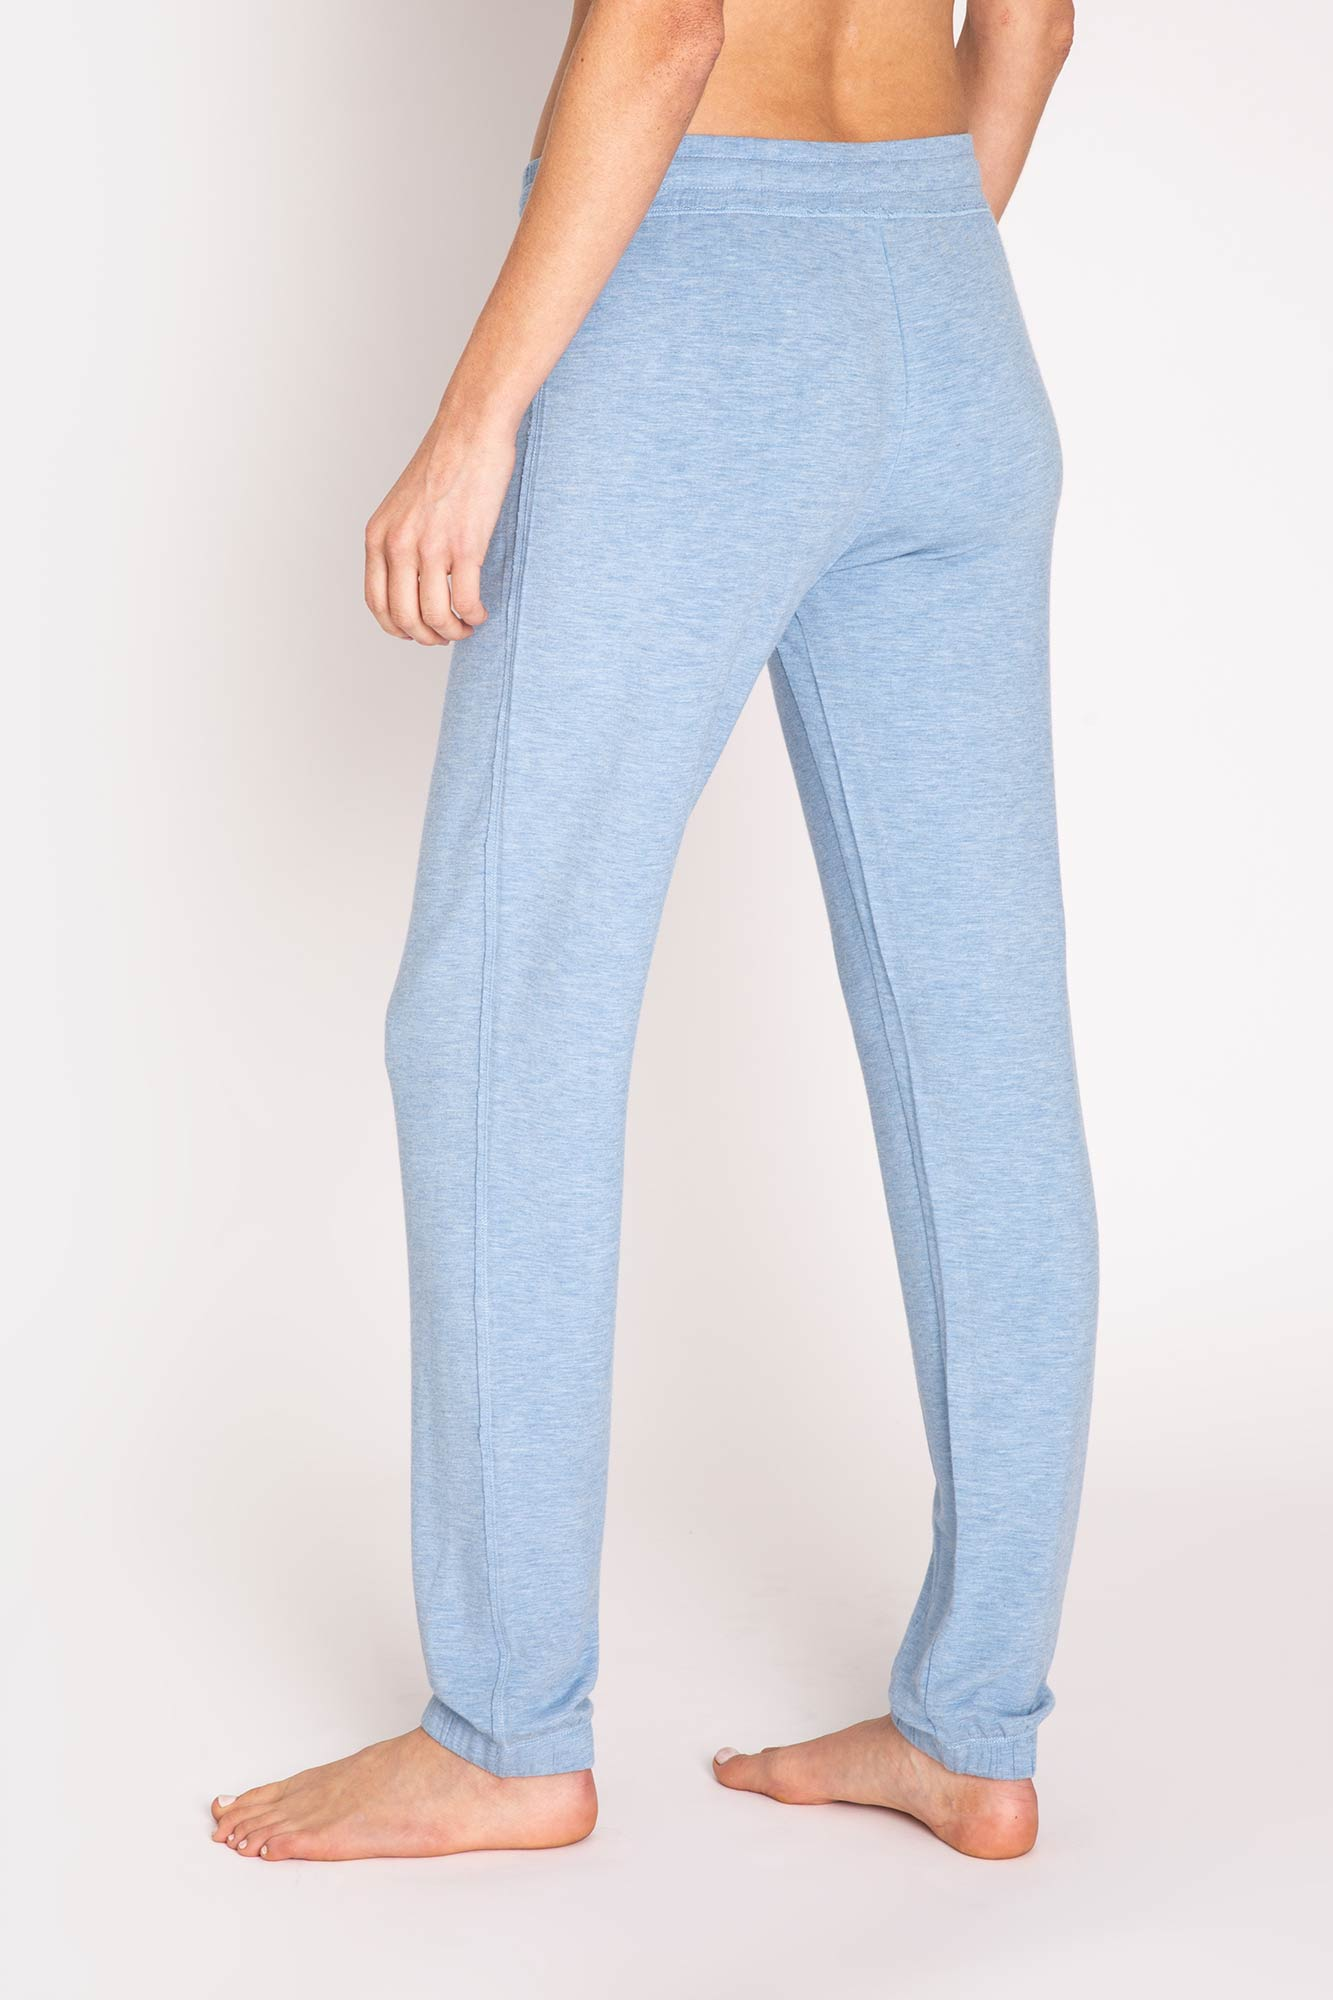 PJ Salvage Lounge Essentials Banded Pant RNLEP1